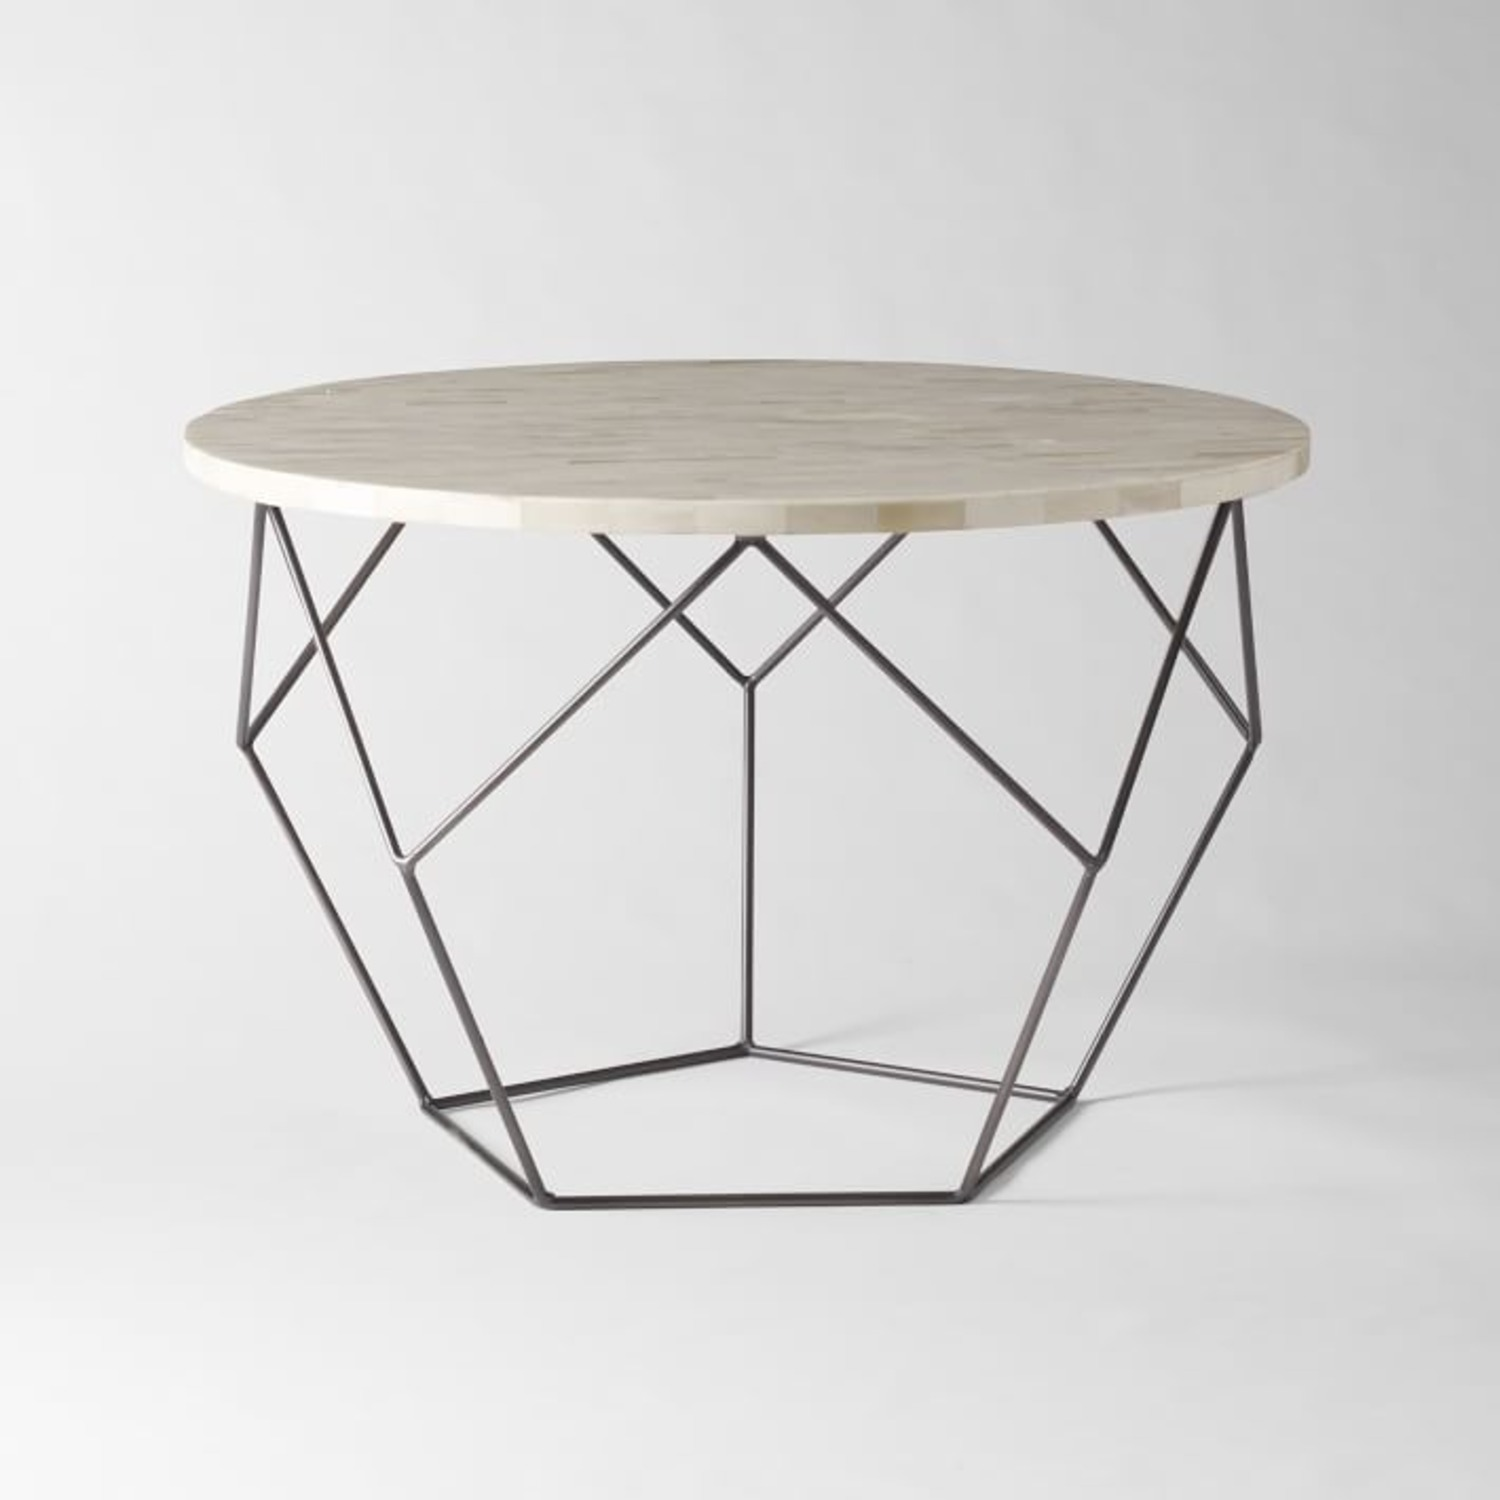 West Elm Origami Coffee Table - image-1